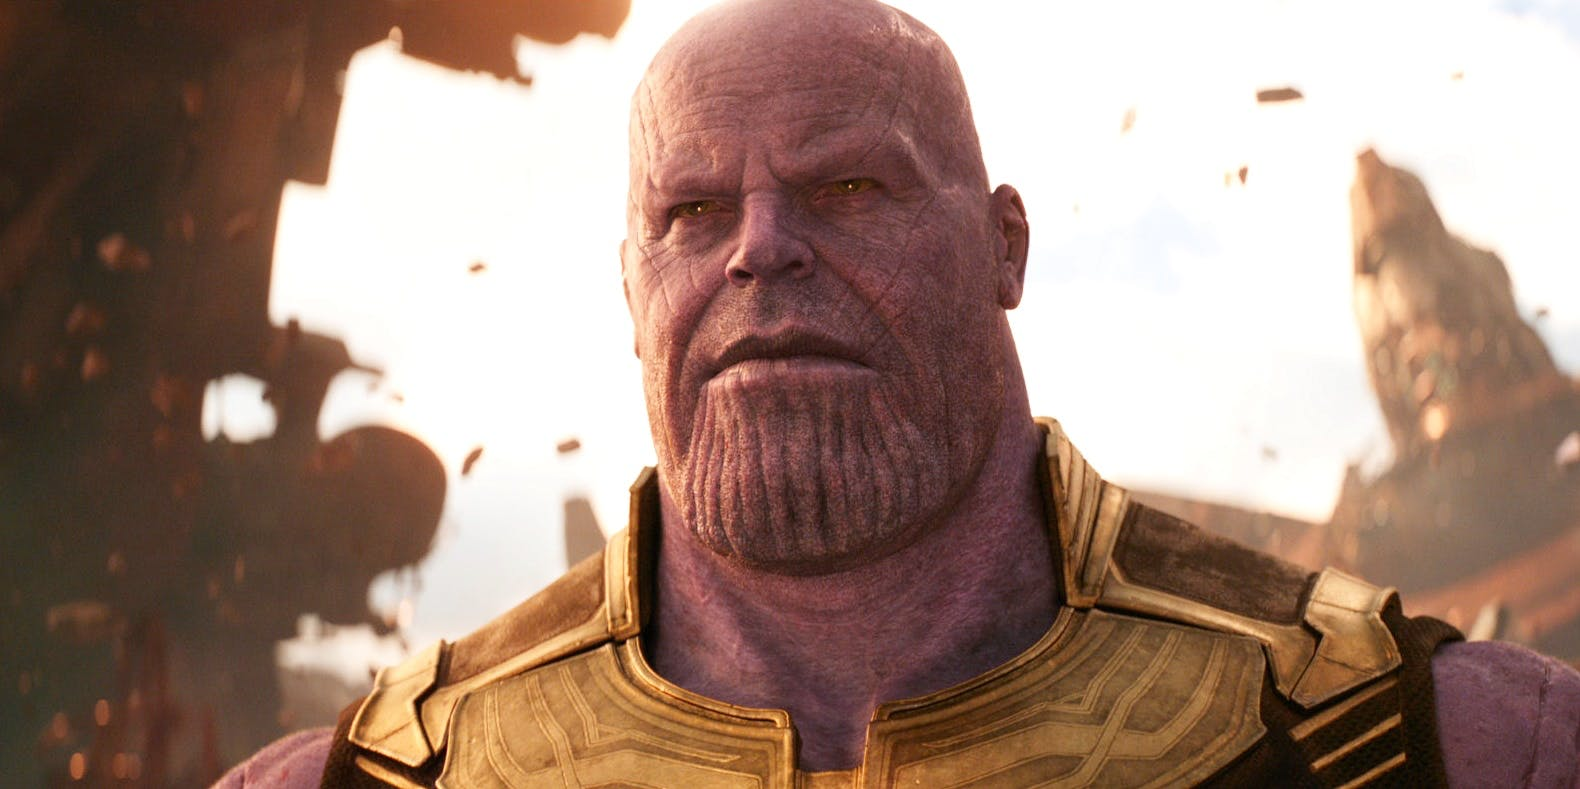 Long Before Thanos Another Villain Killed Half Of